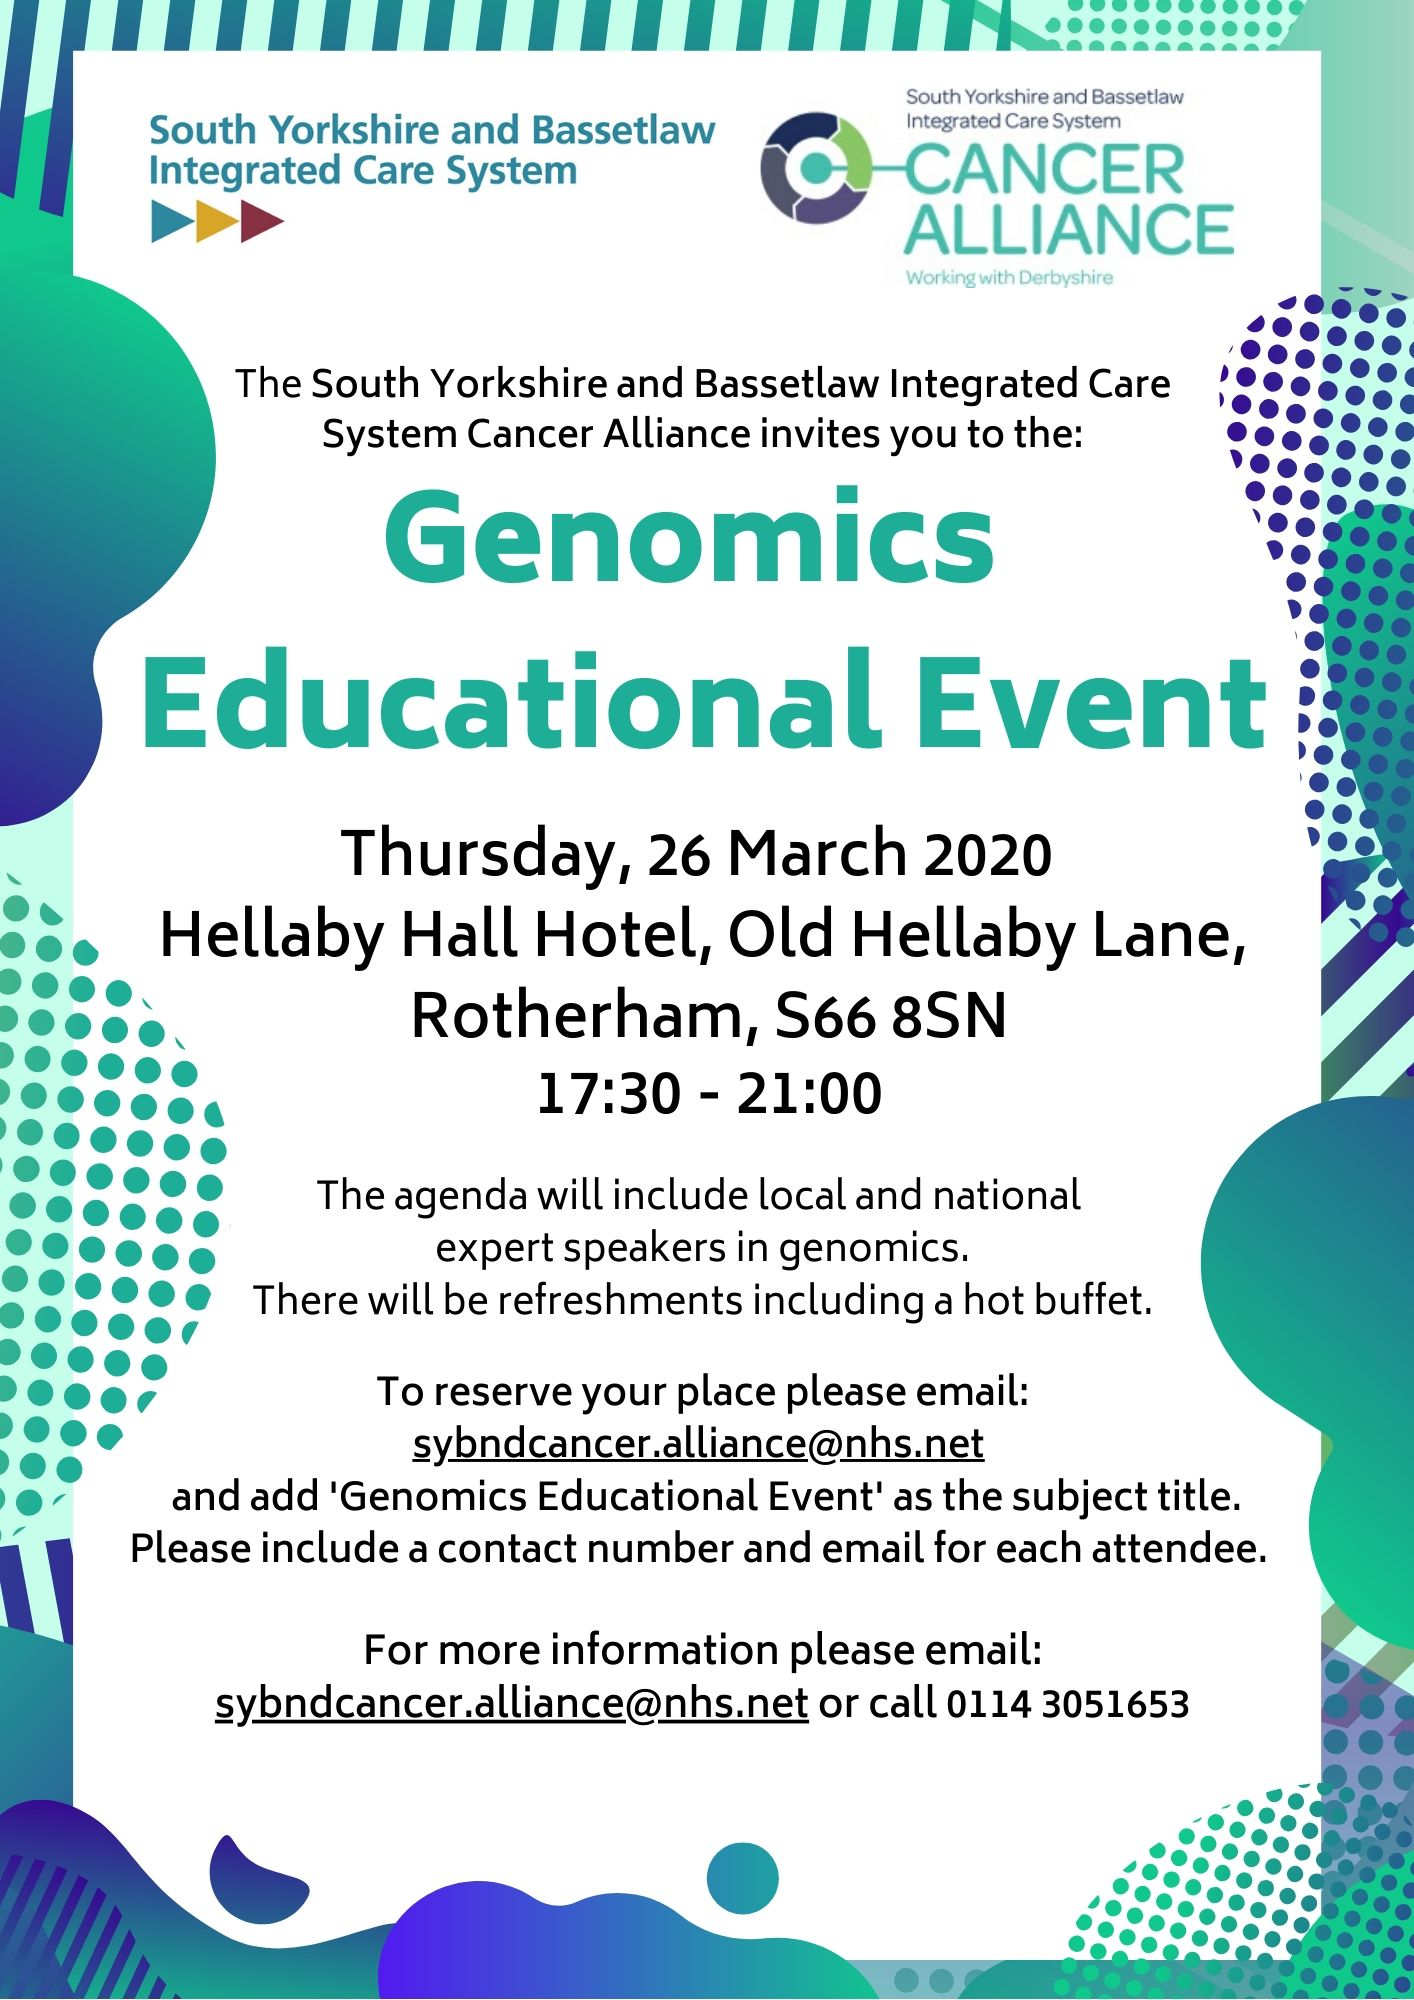 Genomics Educational Event Invite.jpg